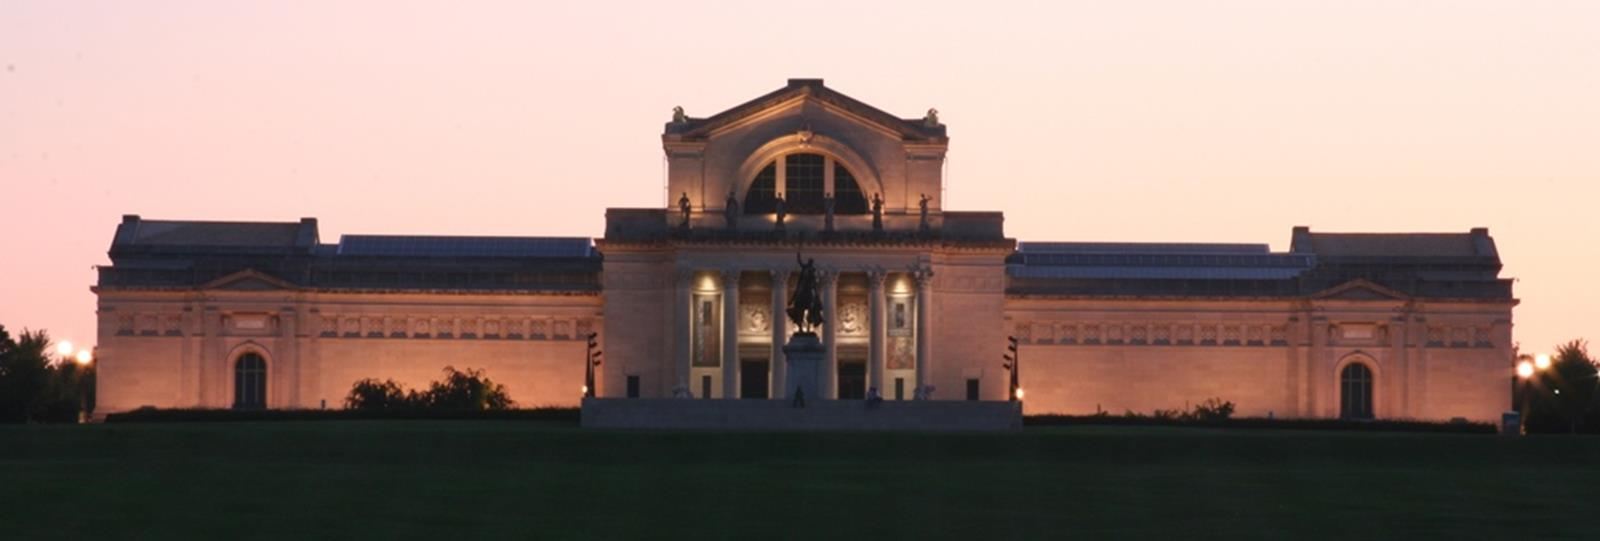 The Saint Louis Art Museum during the evening. Credit: Matt Kitces at en.wikipedia